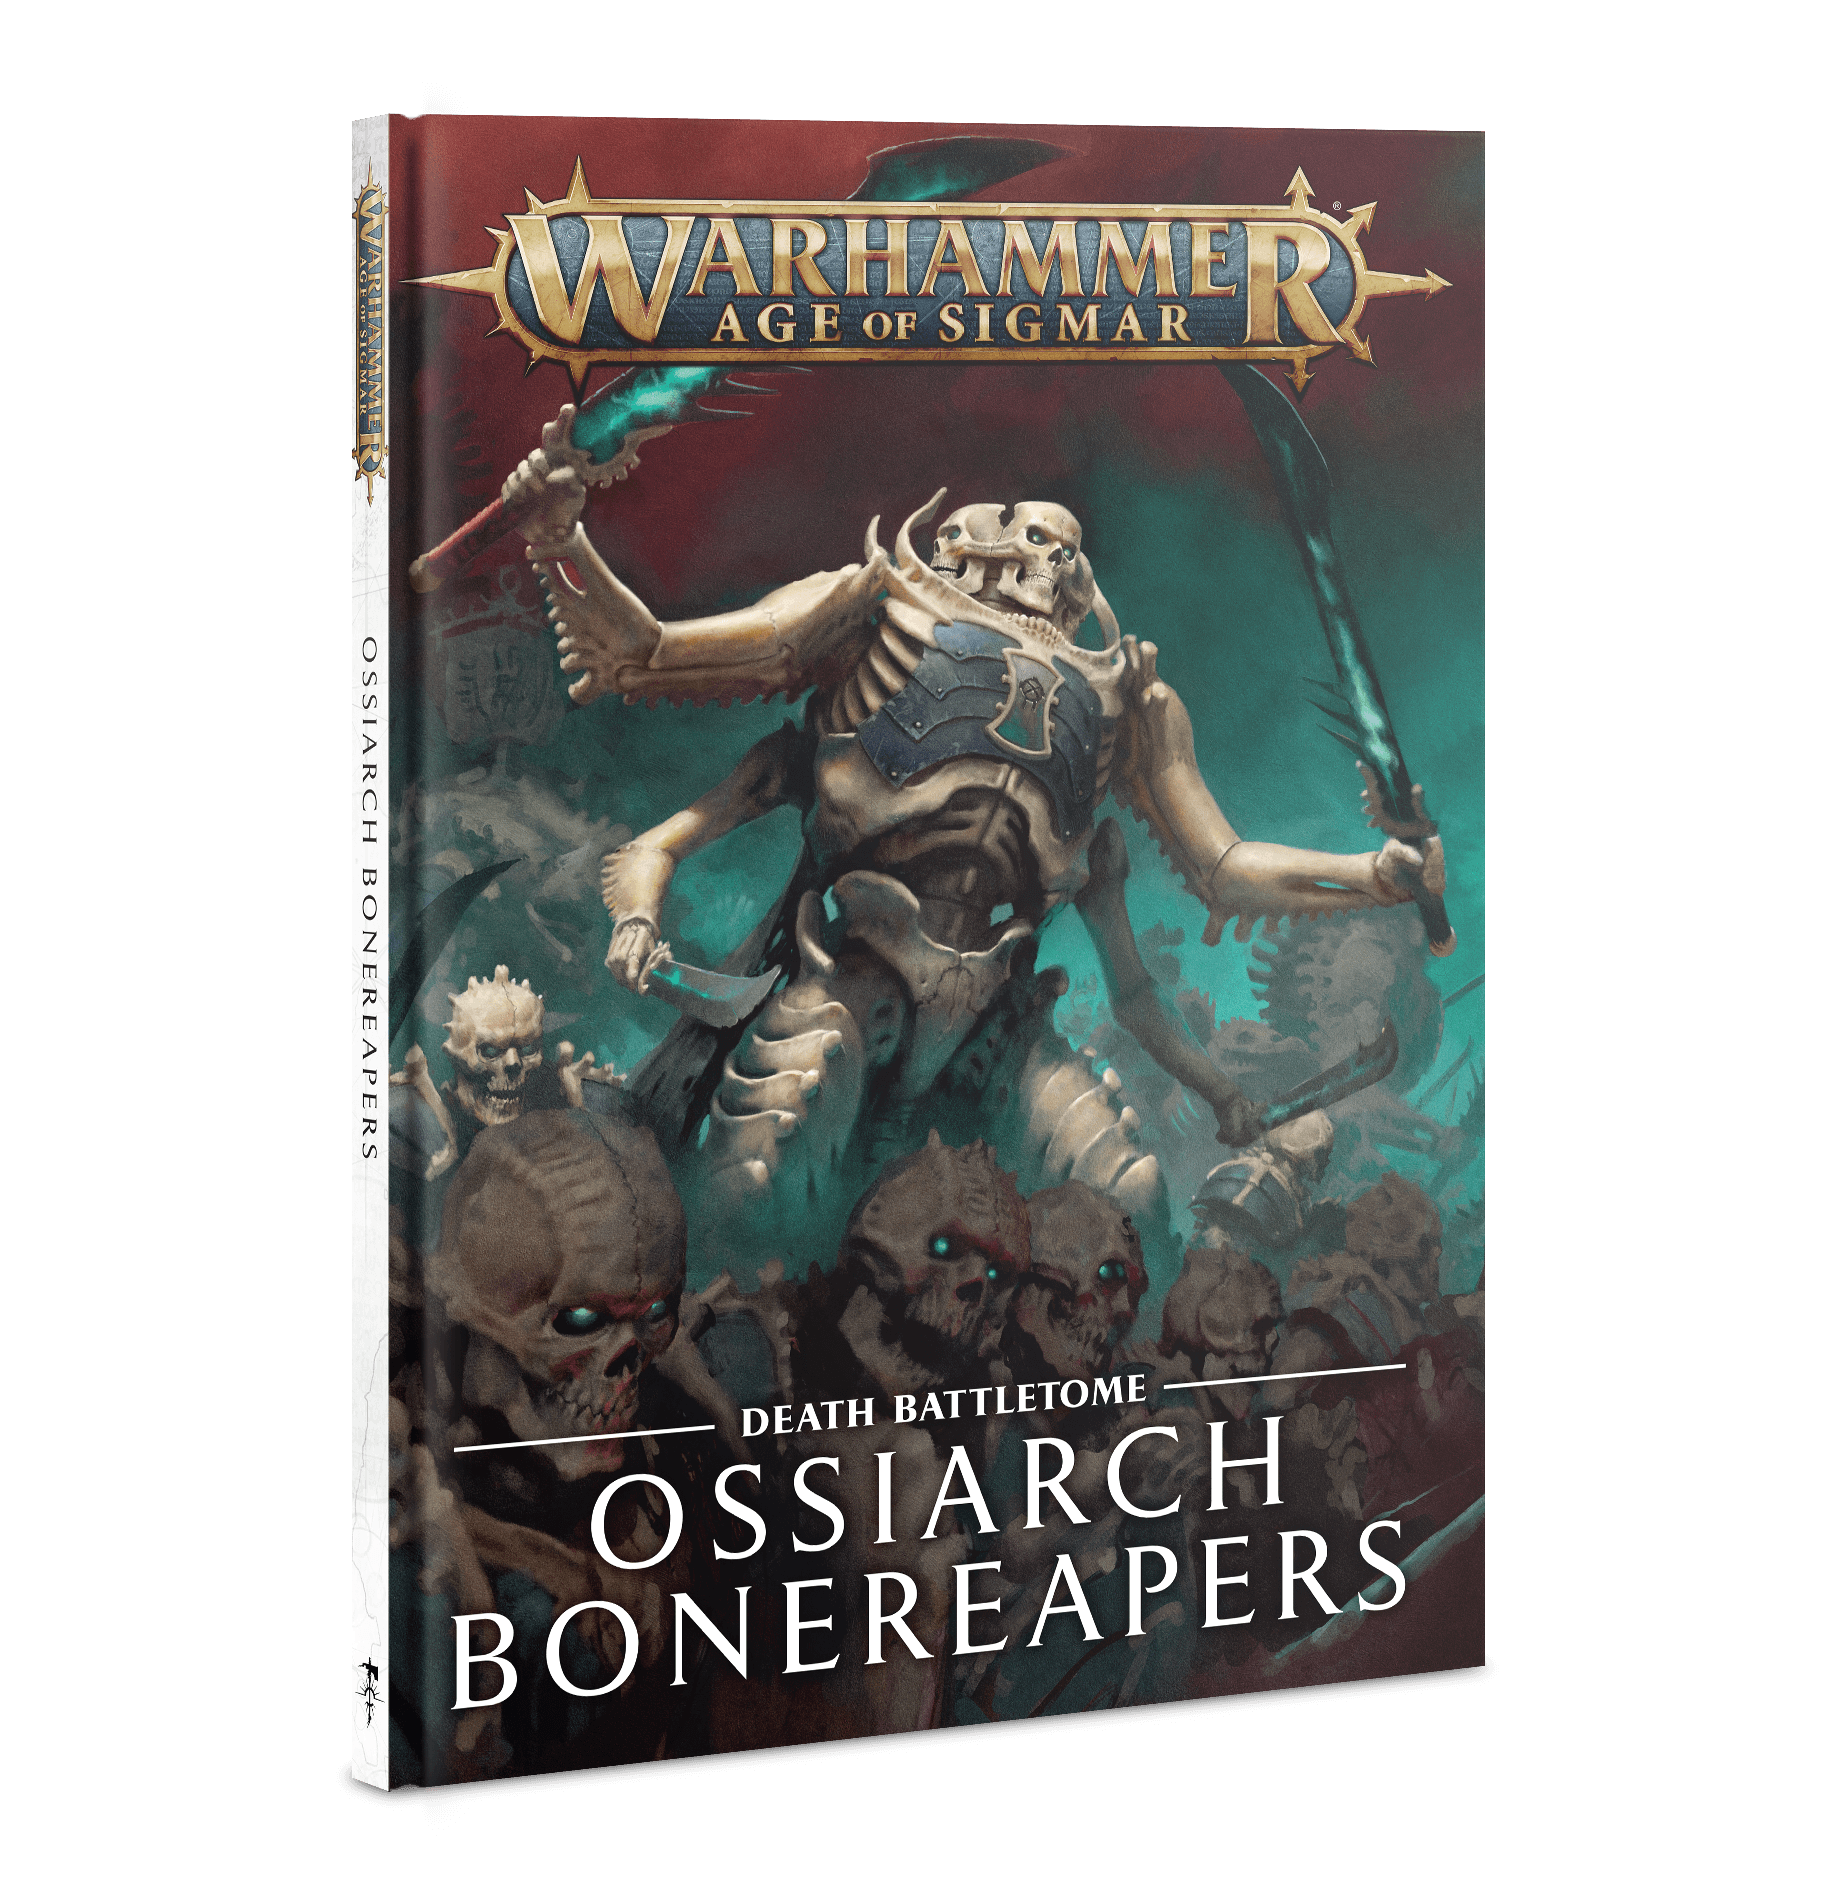 Ossiarch Bonereapers, Battletome